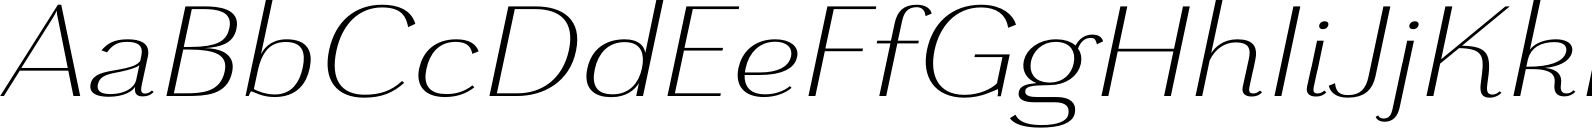 Grenale Ext Book Italic